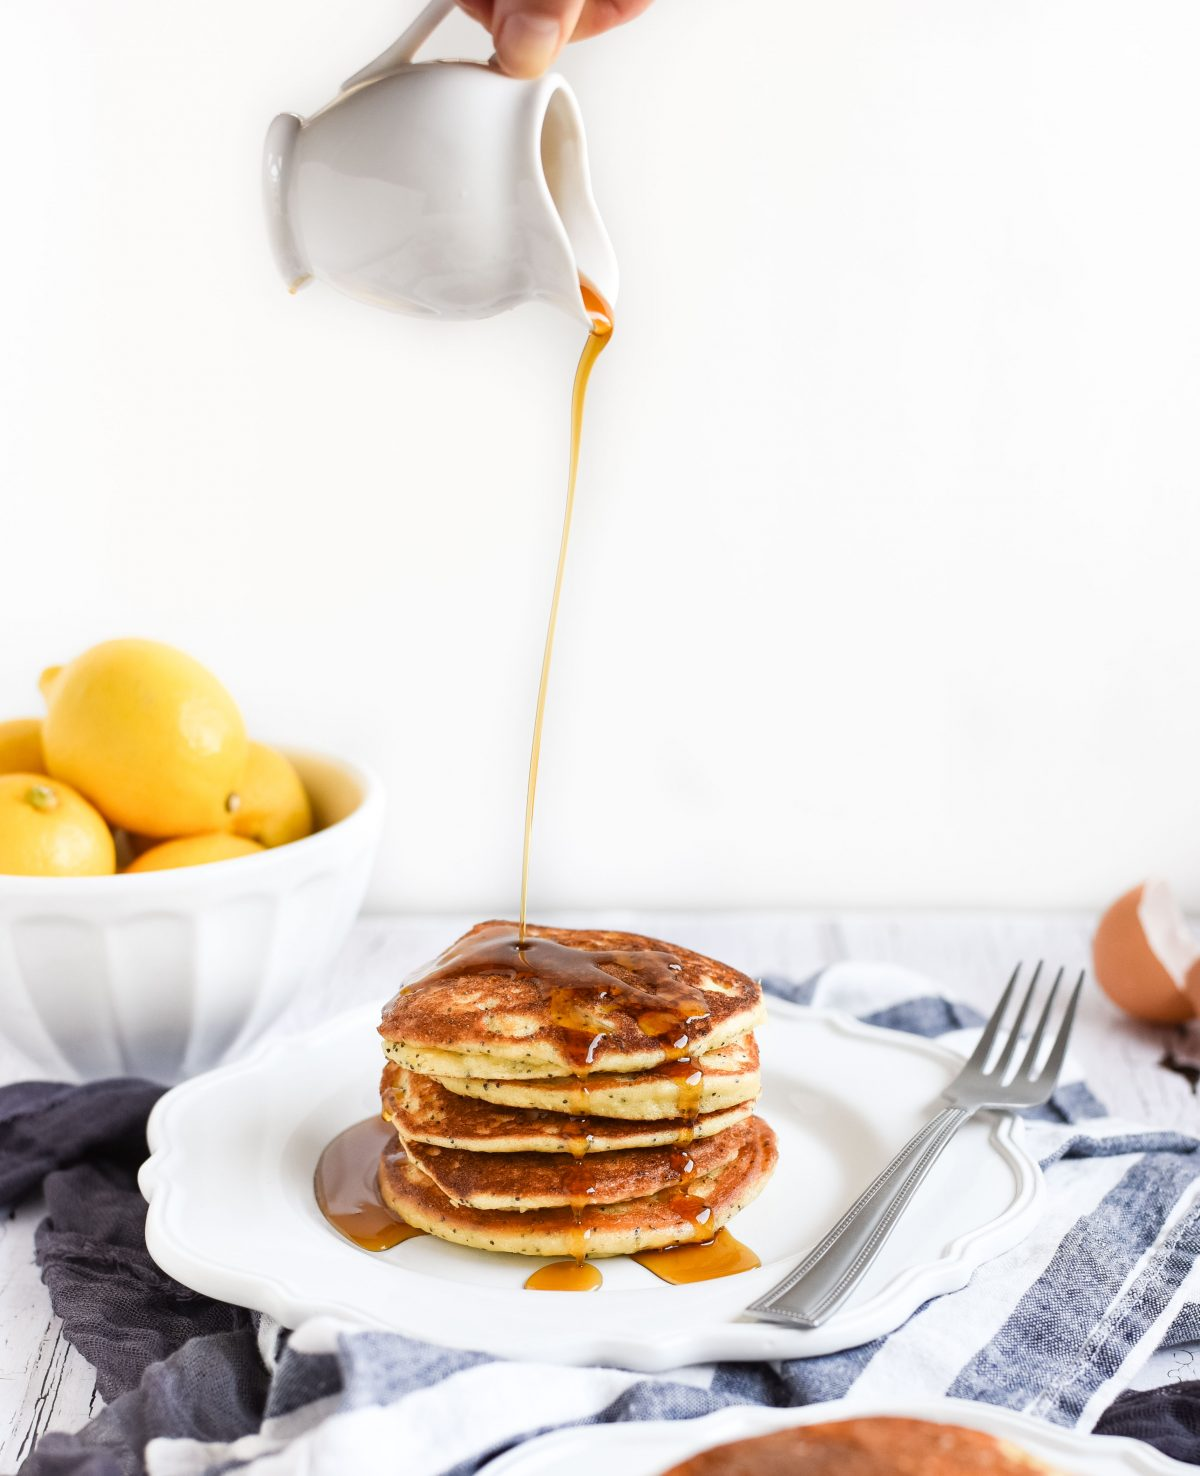 Lemon poppy seed pancakes with syrup drizzled on top picture